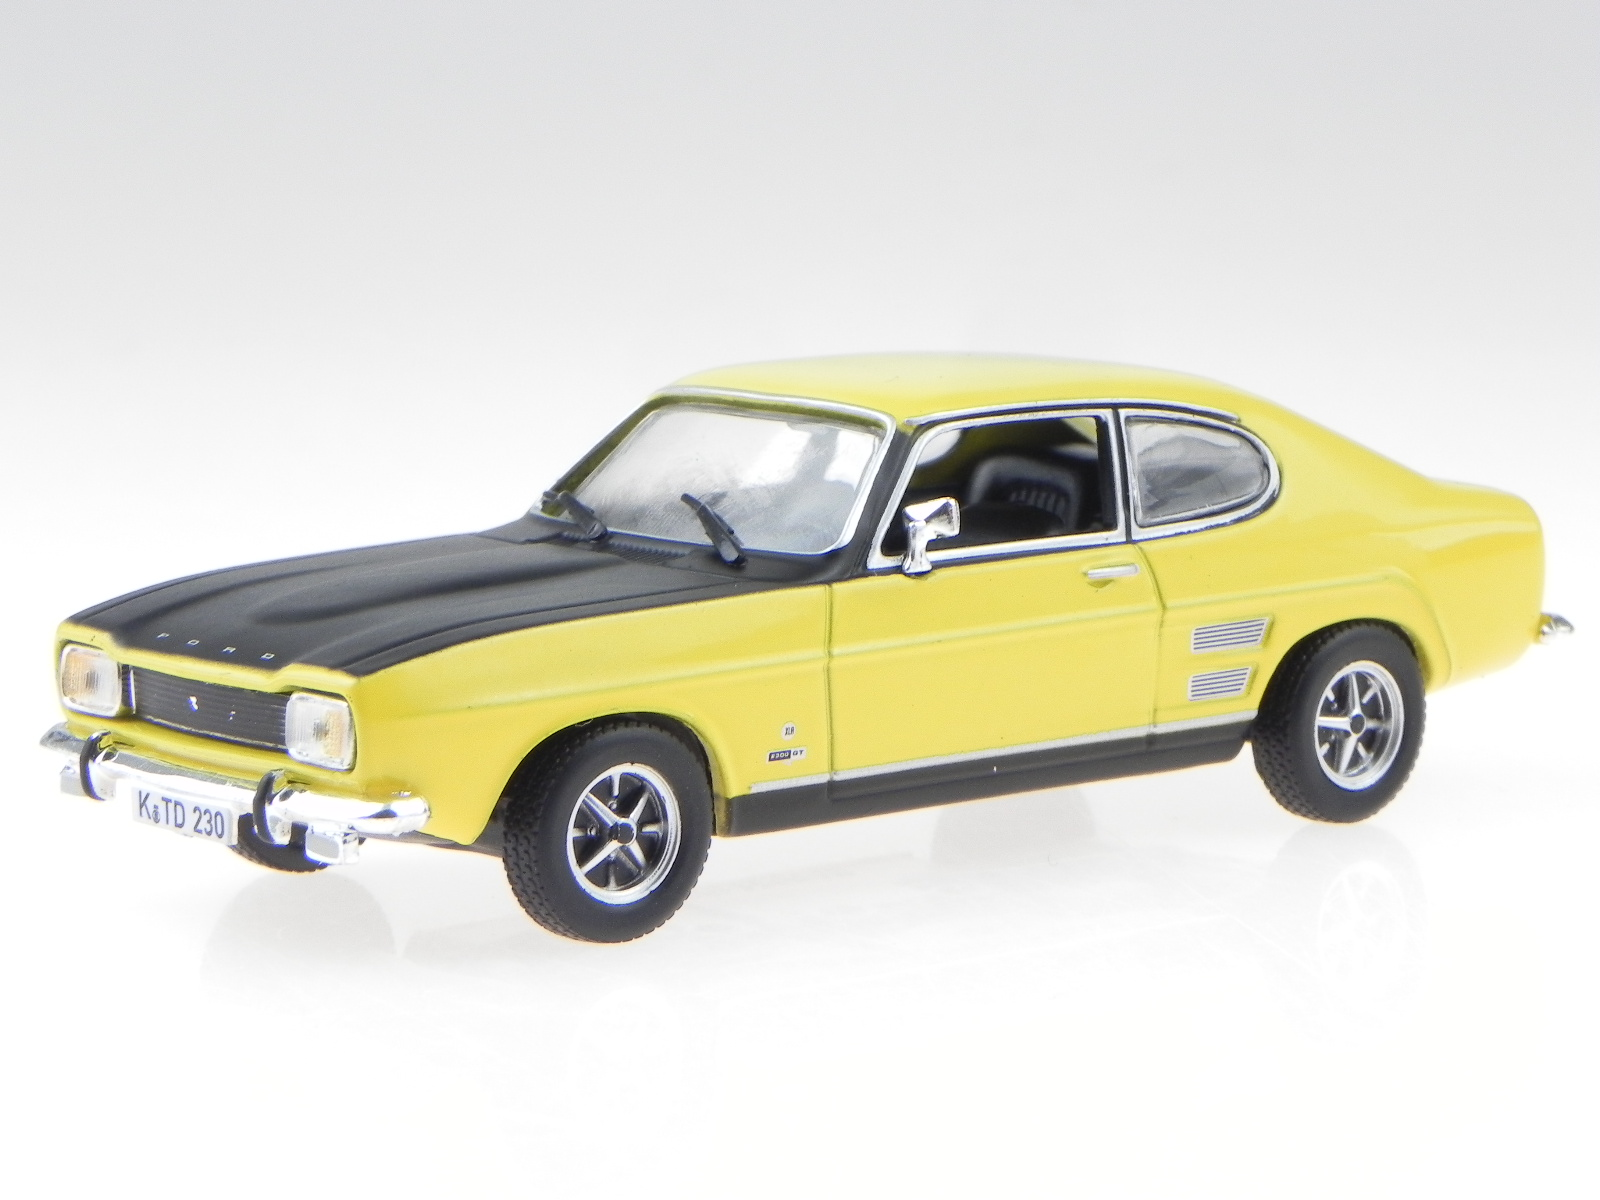 Ford Capri Mk1 1700 Gt Yellow Black Diecast Modelcar In Vitrine Atlas 1 43 For Sale Online